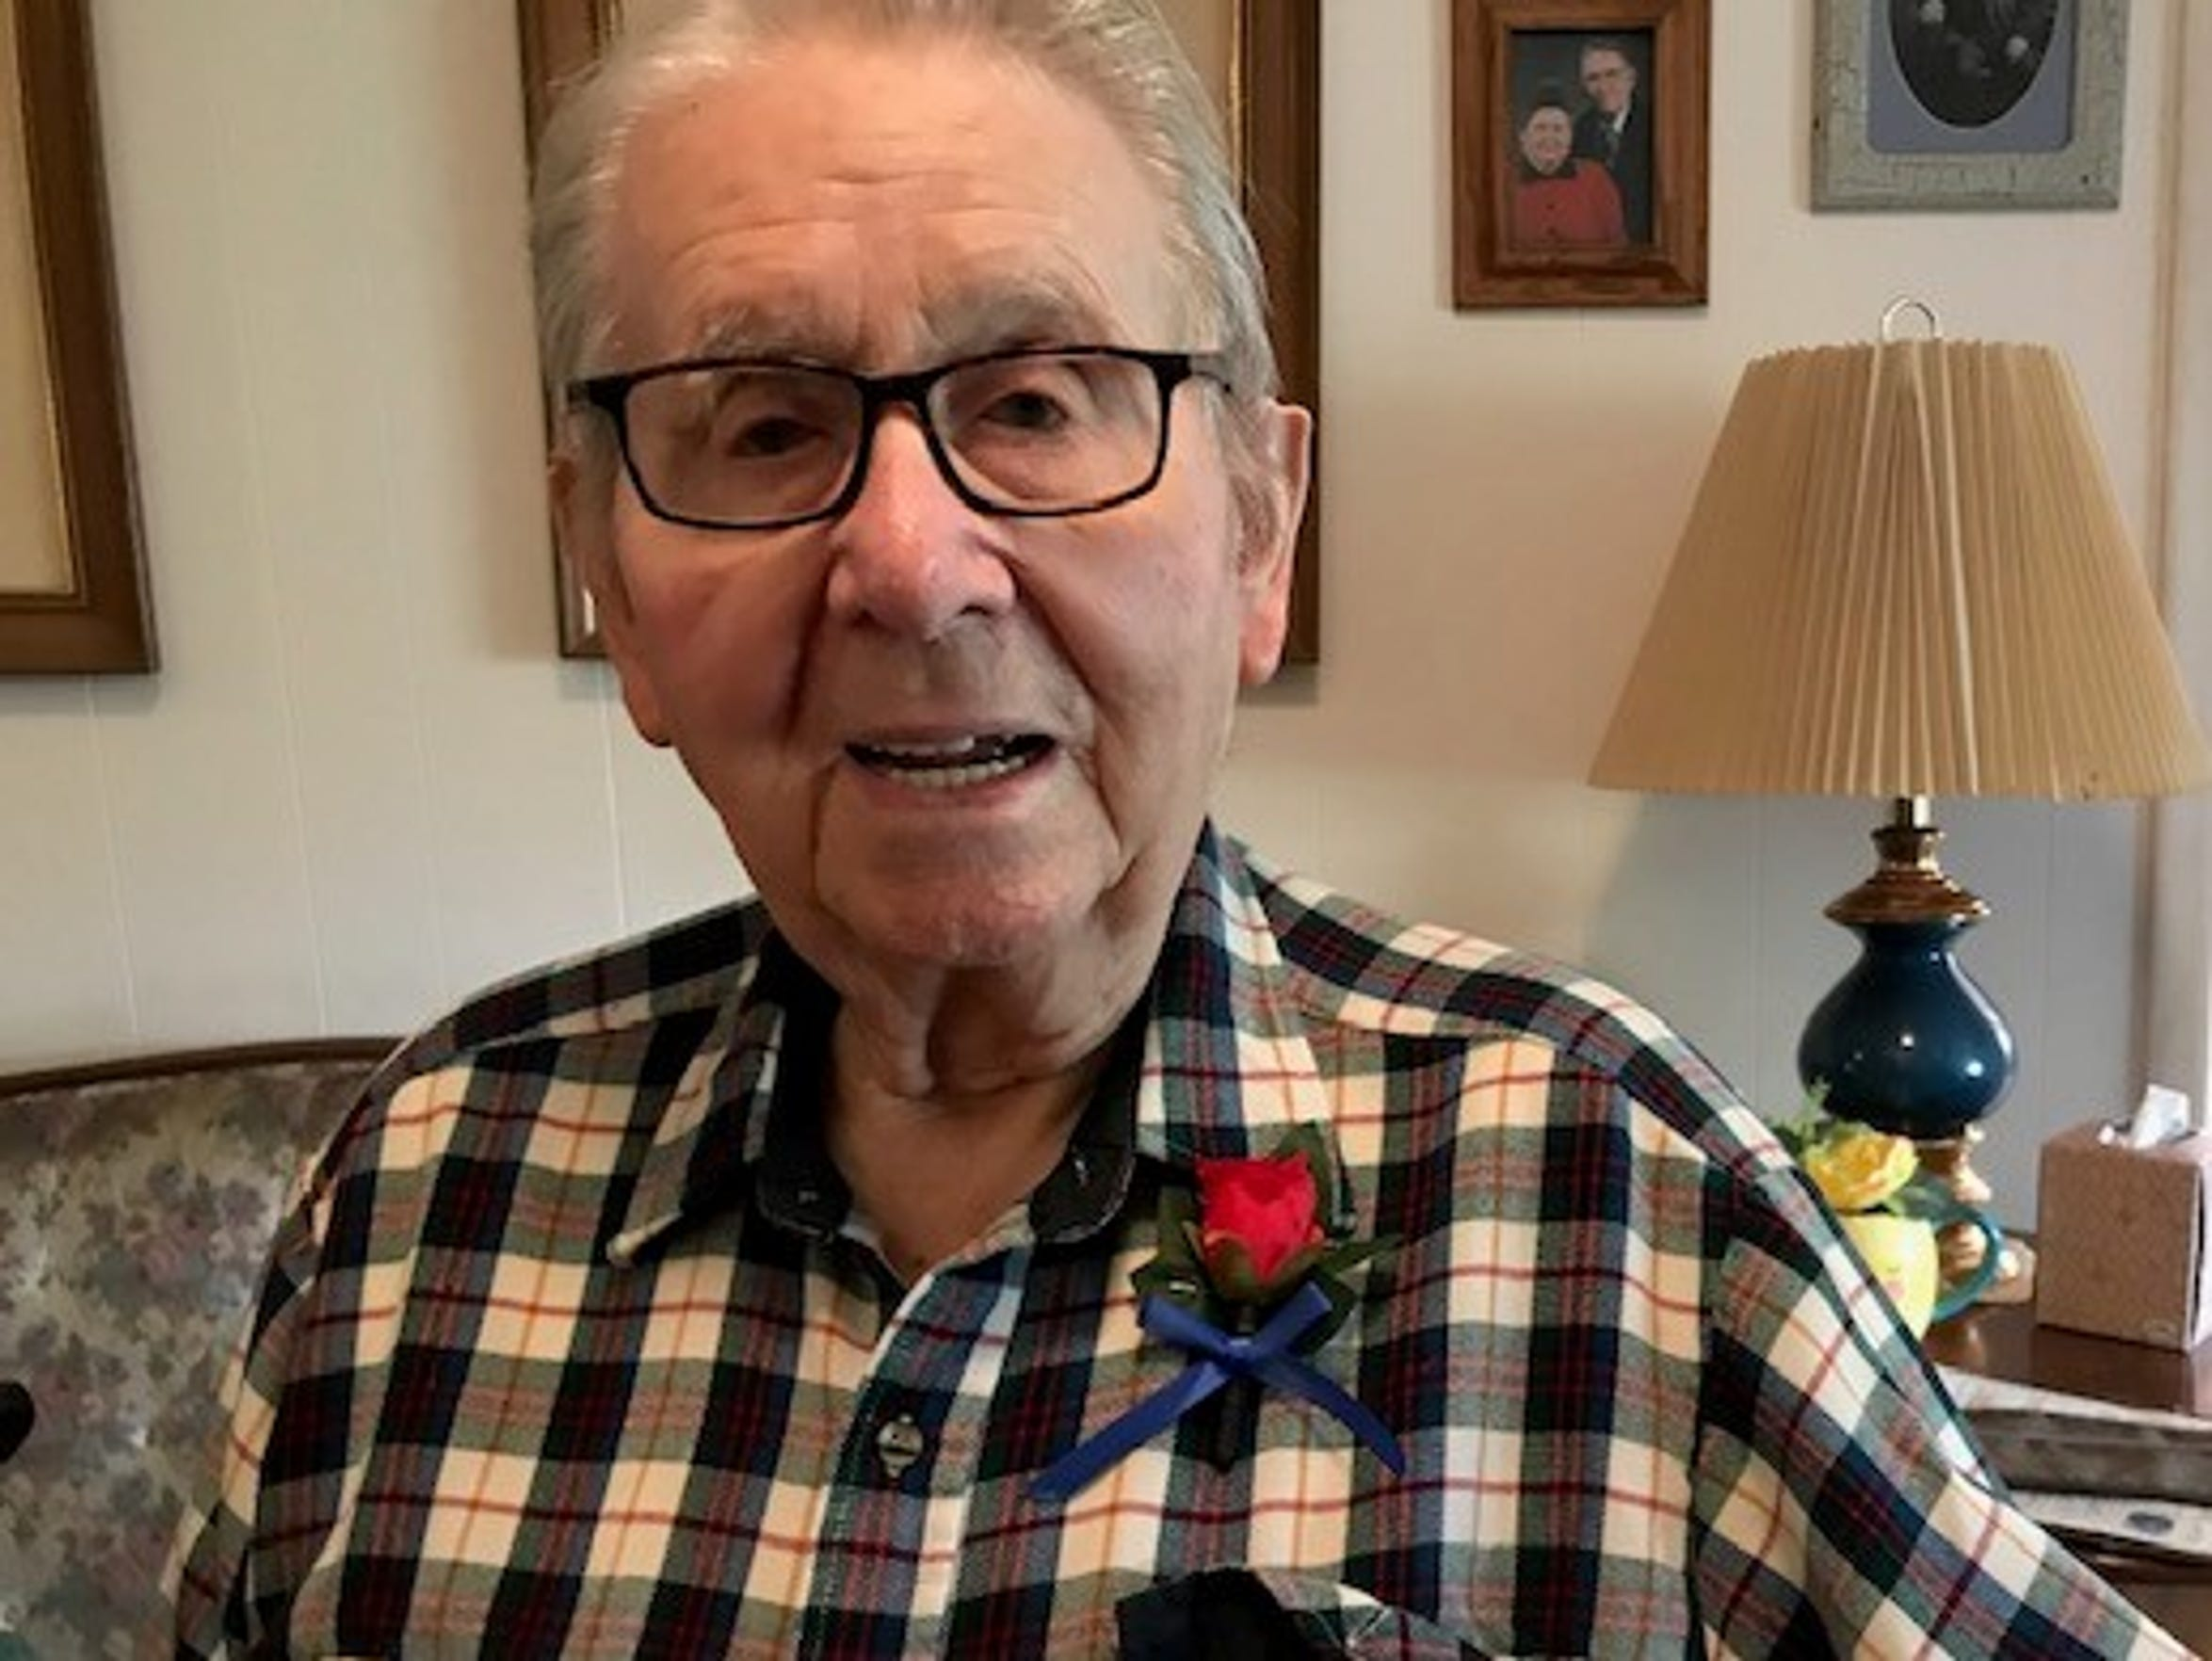 Calvin Haar, 95, of Elmore served as a paratrooper in the U.S. Army during World War II. He is one of the last remaining World War II veterans still alive in Ottawa County.